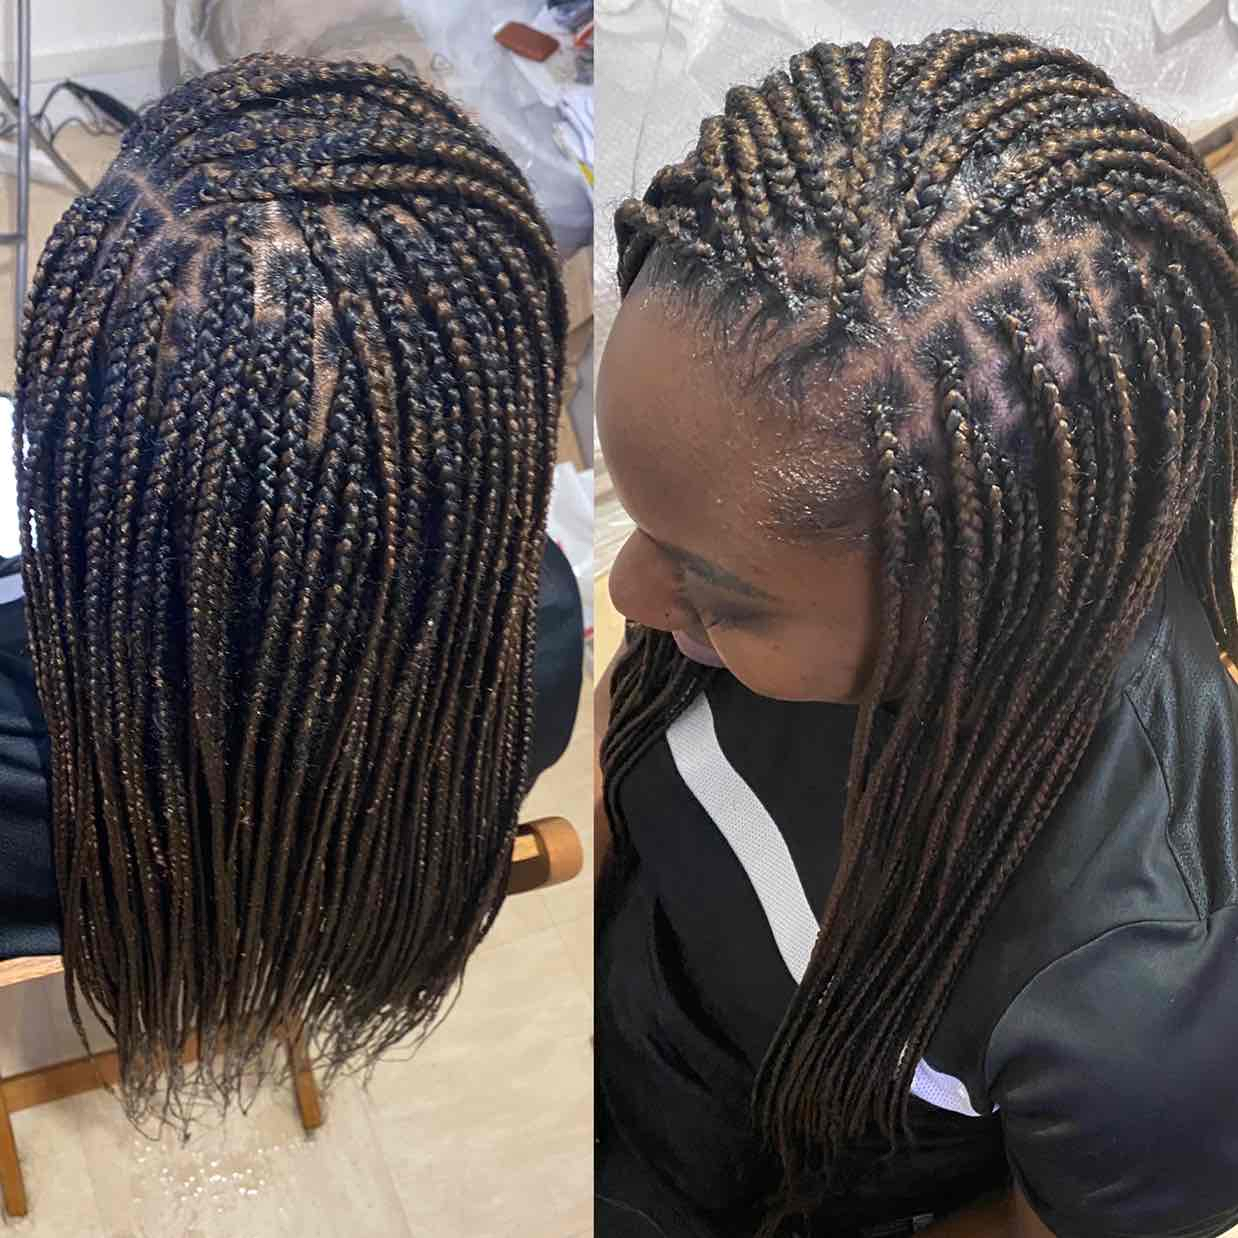 salon de coiffure afro tresse tresses box braids crochet braids vanilles tissages paris 75 77 78 91 92 93 94 95 GMOPZAOG